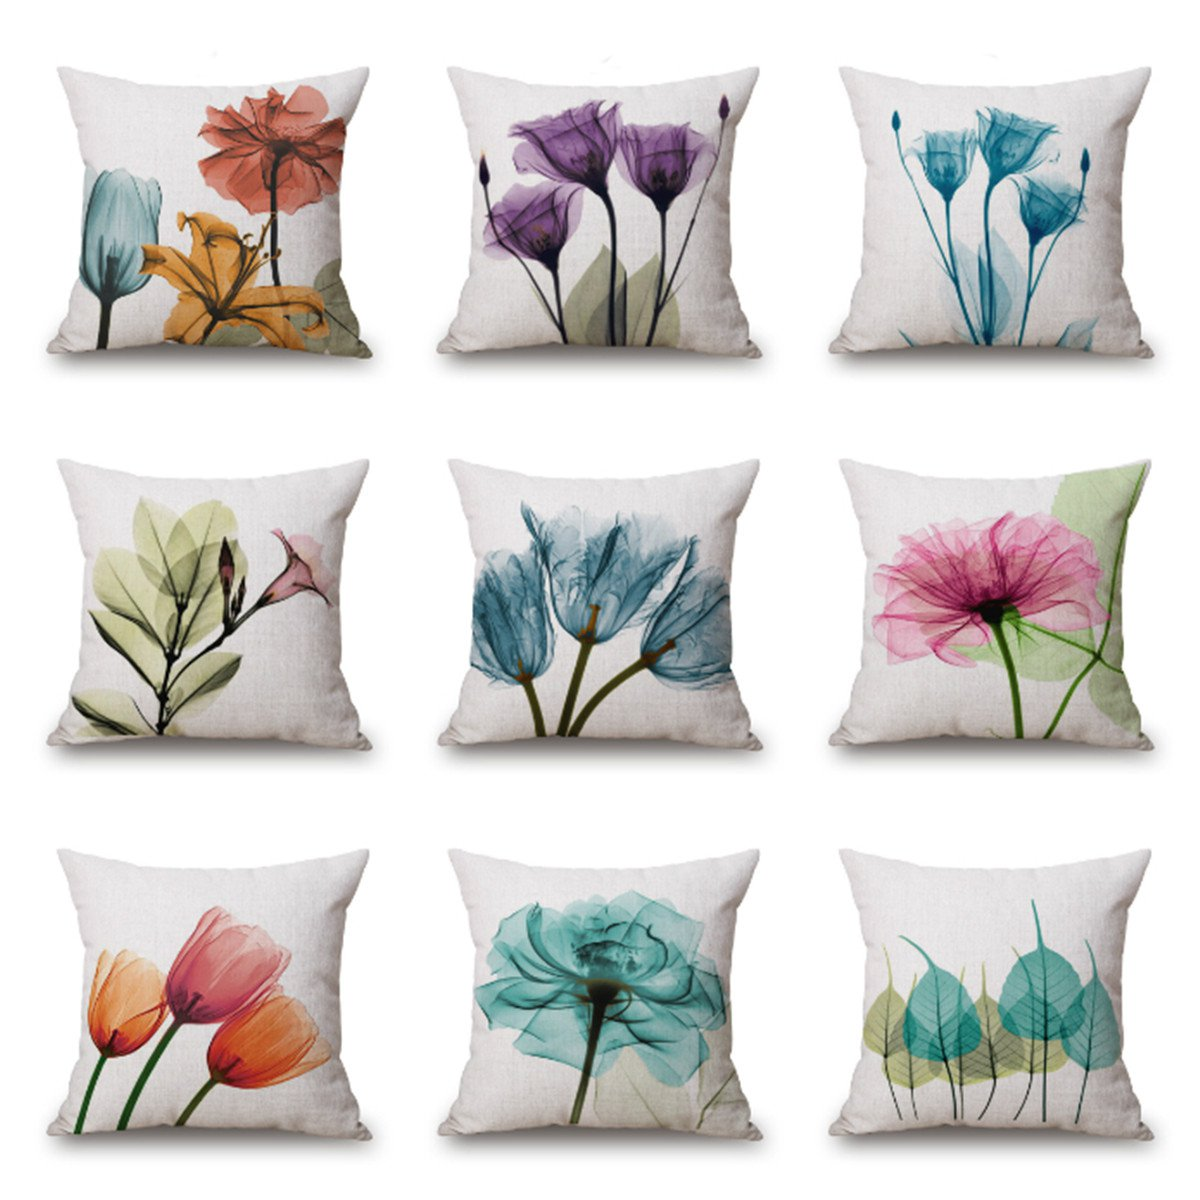 Meigar Decorative Throw Pillow Covers Clearance 18''x18'' Simple Style Flowers Linen Pillow Cases Protector with Zipper for Car Sofa Couch Bed Home